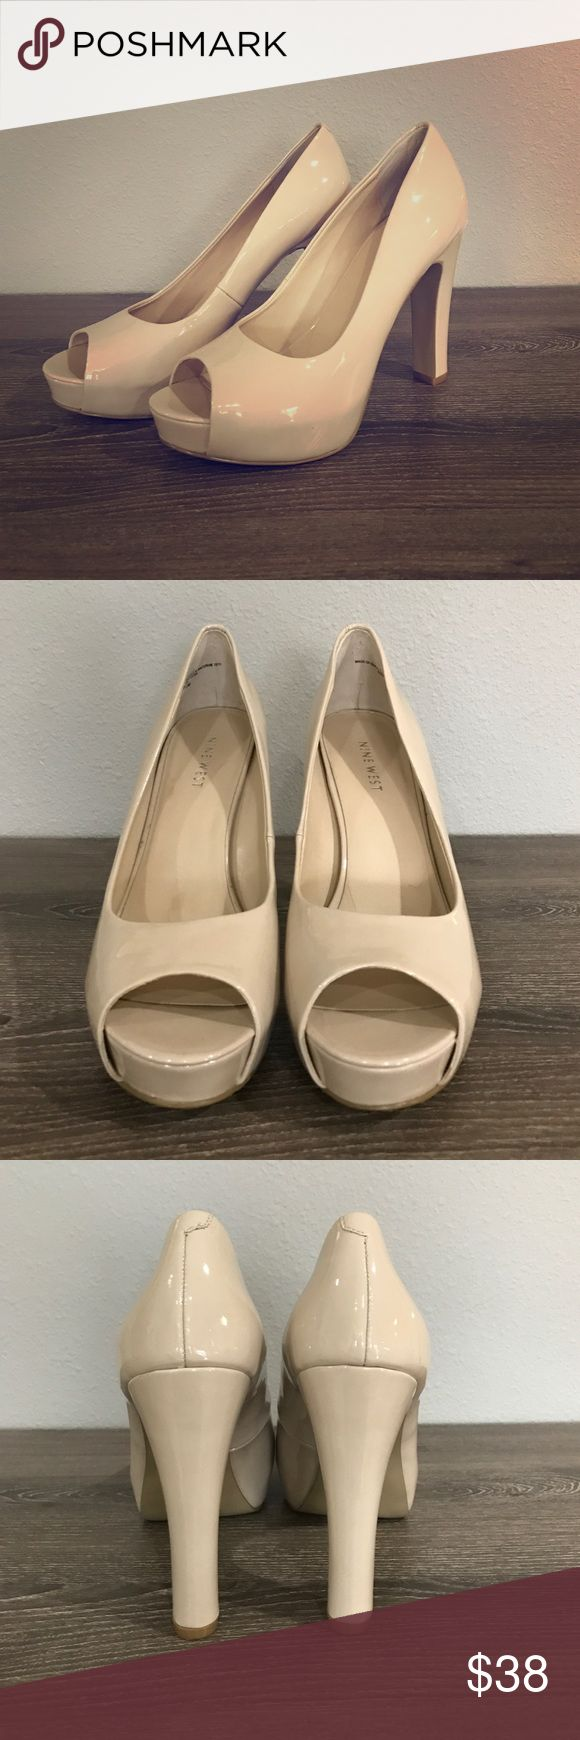 Nude Peep Toe Platform Pumps These shoes are like new! Been worn once and have no scuffs! Patent leather body. Nine West Shoes Heels